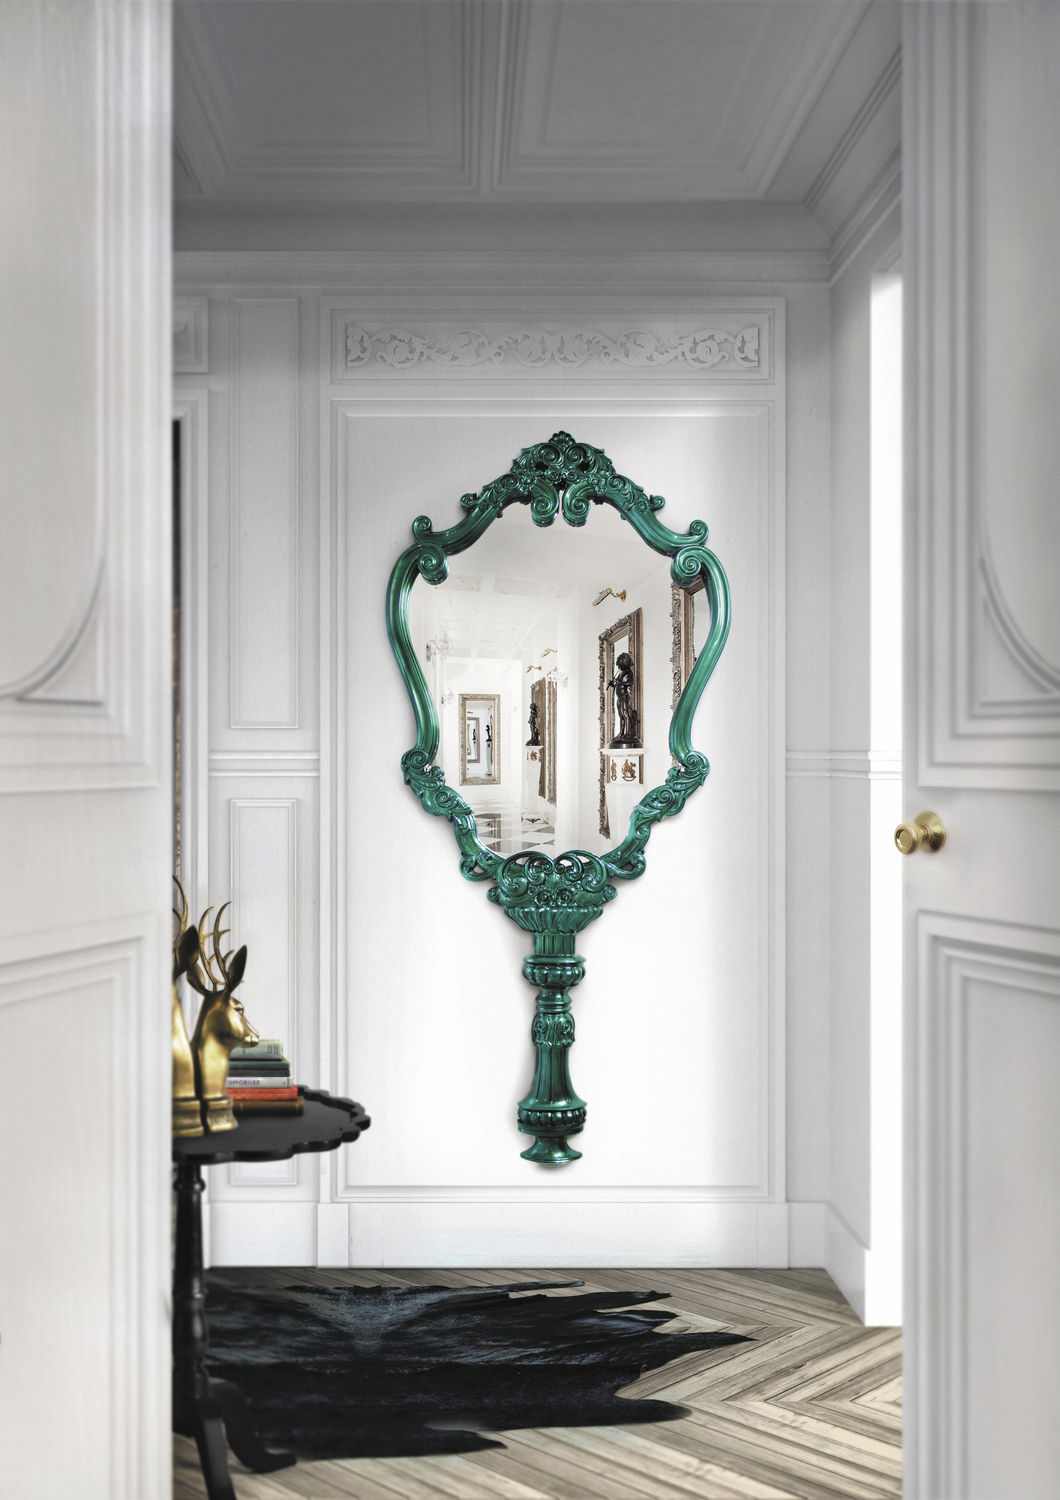 wall mirror designs The Most Beautiful Wall Mirror Designs for Your Living Room The Most Beautiful Wall Mirror Designs for Your Living Room8